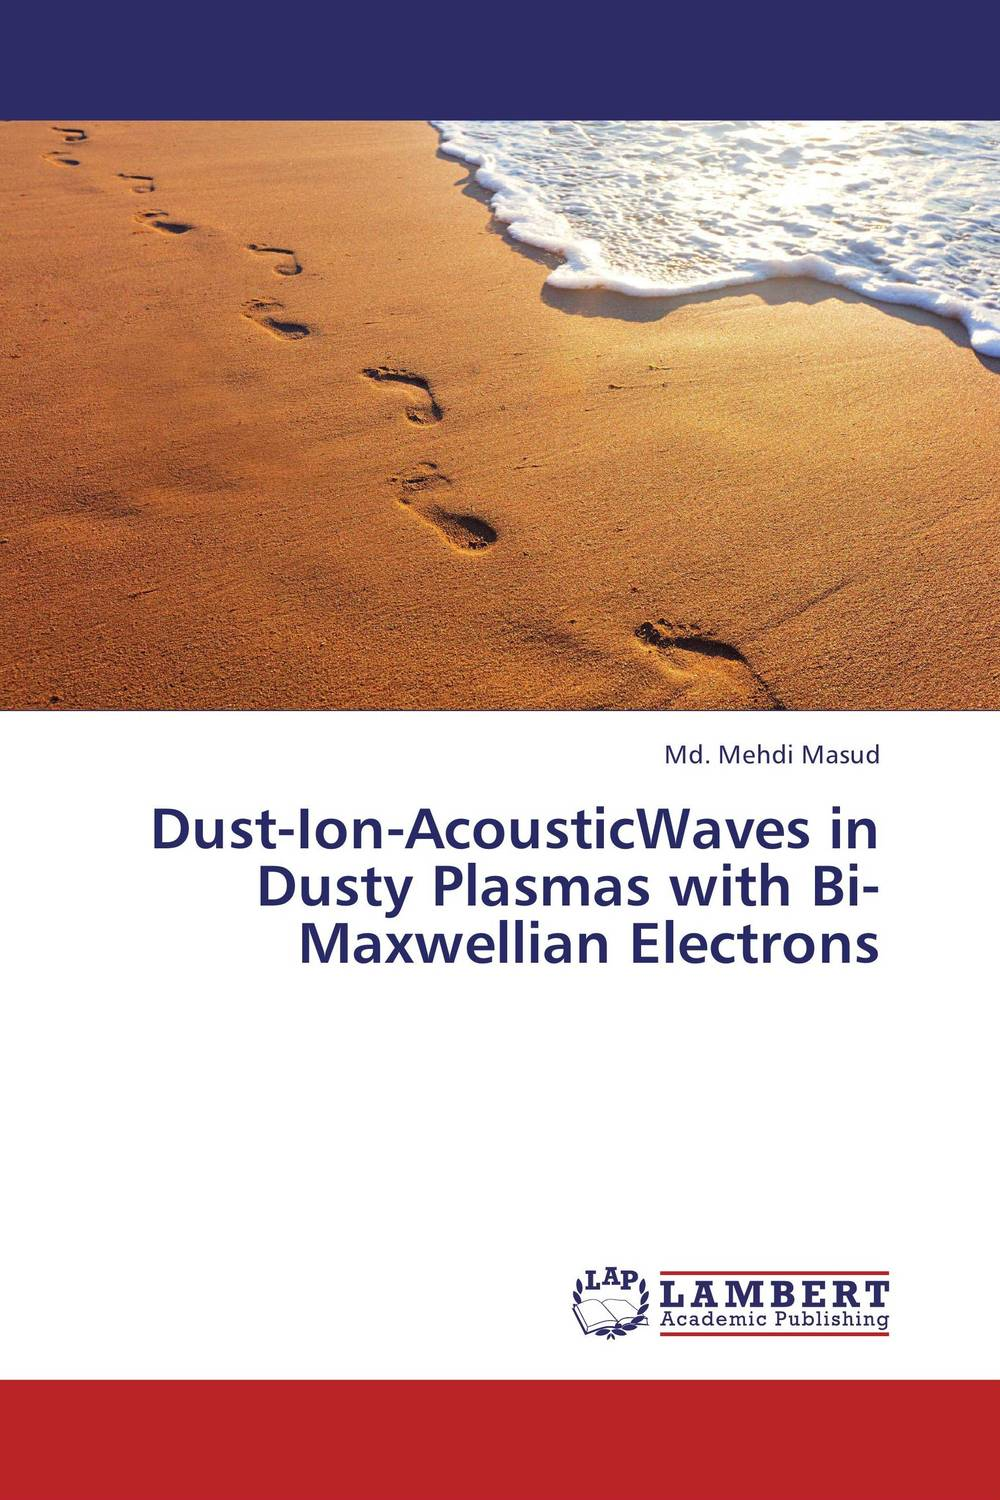 Dust-Ion-AcousticWaves in Dusty Plasmas with Bi-Maxwellian Electrons